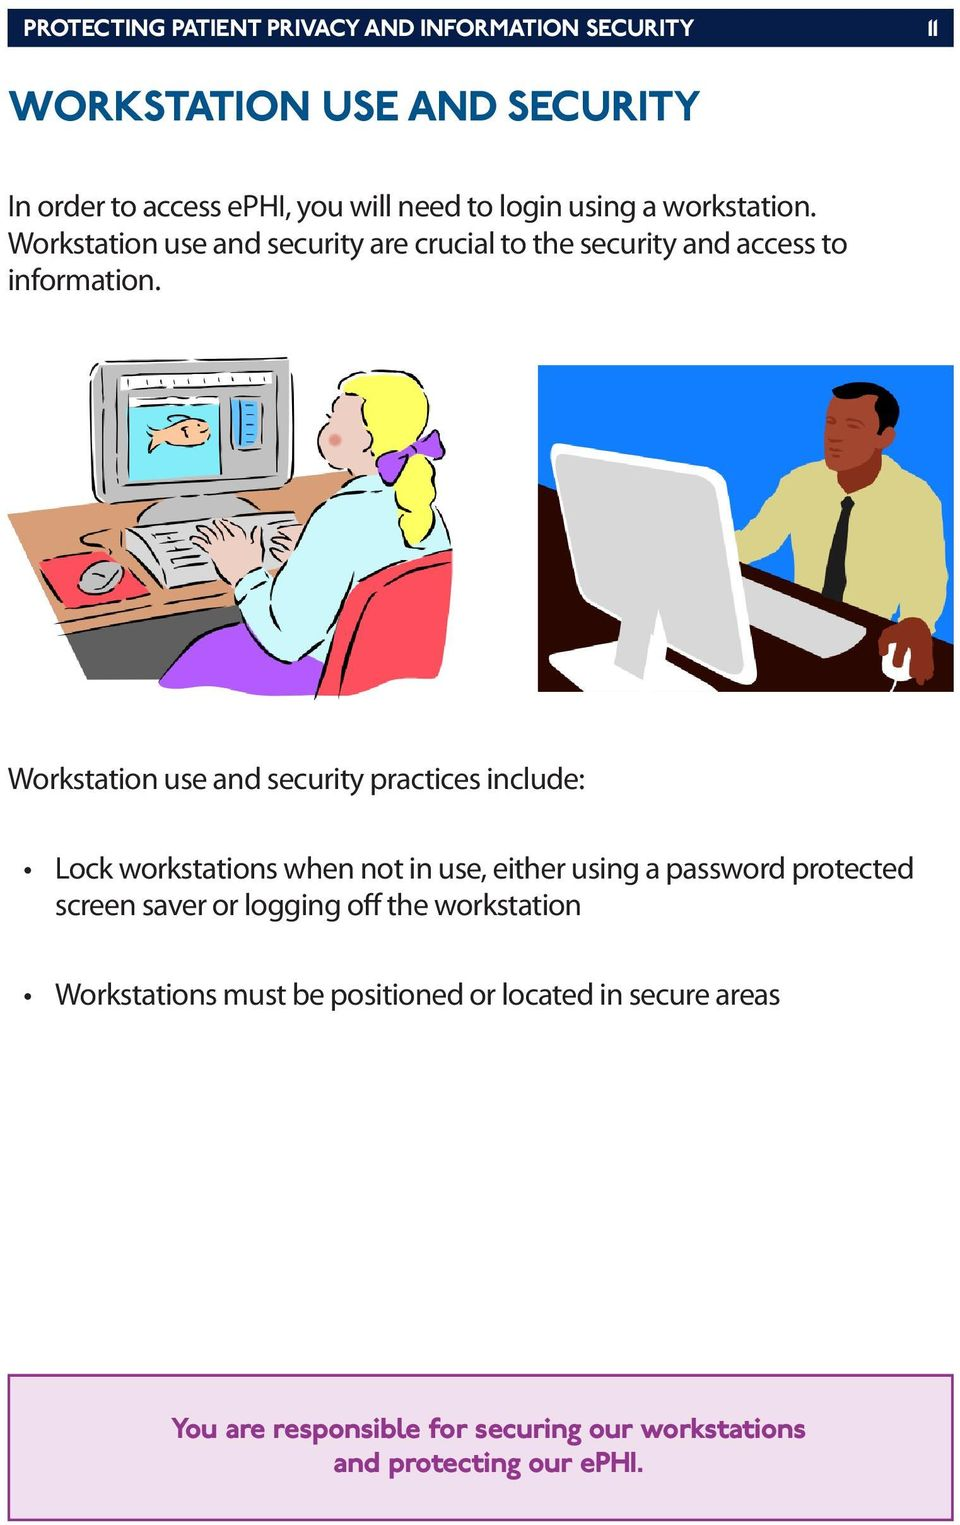 Workstation use and security practices include: Lock workstations when not in use, either using a password protected screen saver or